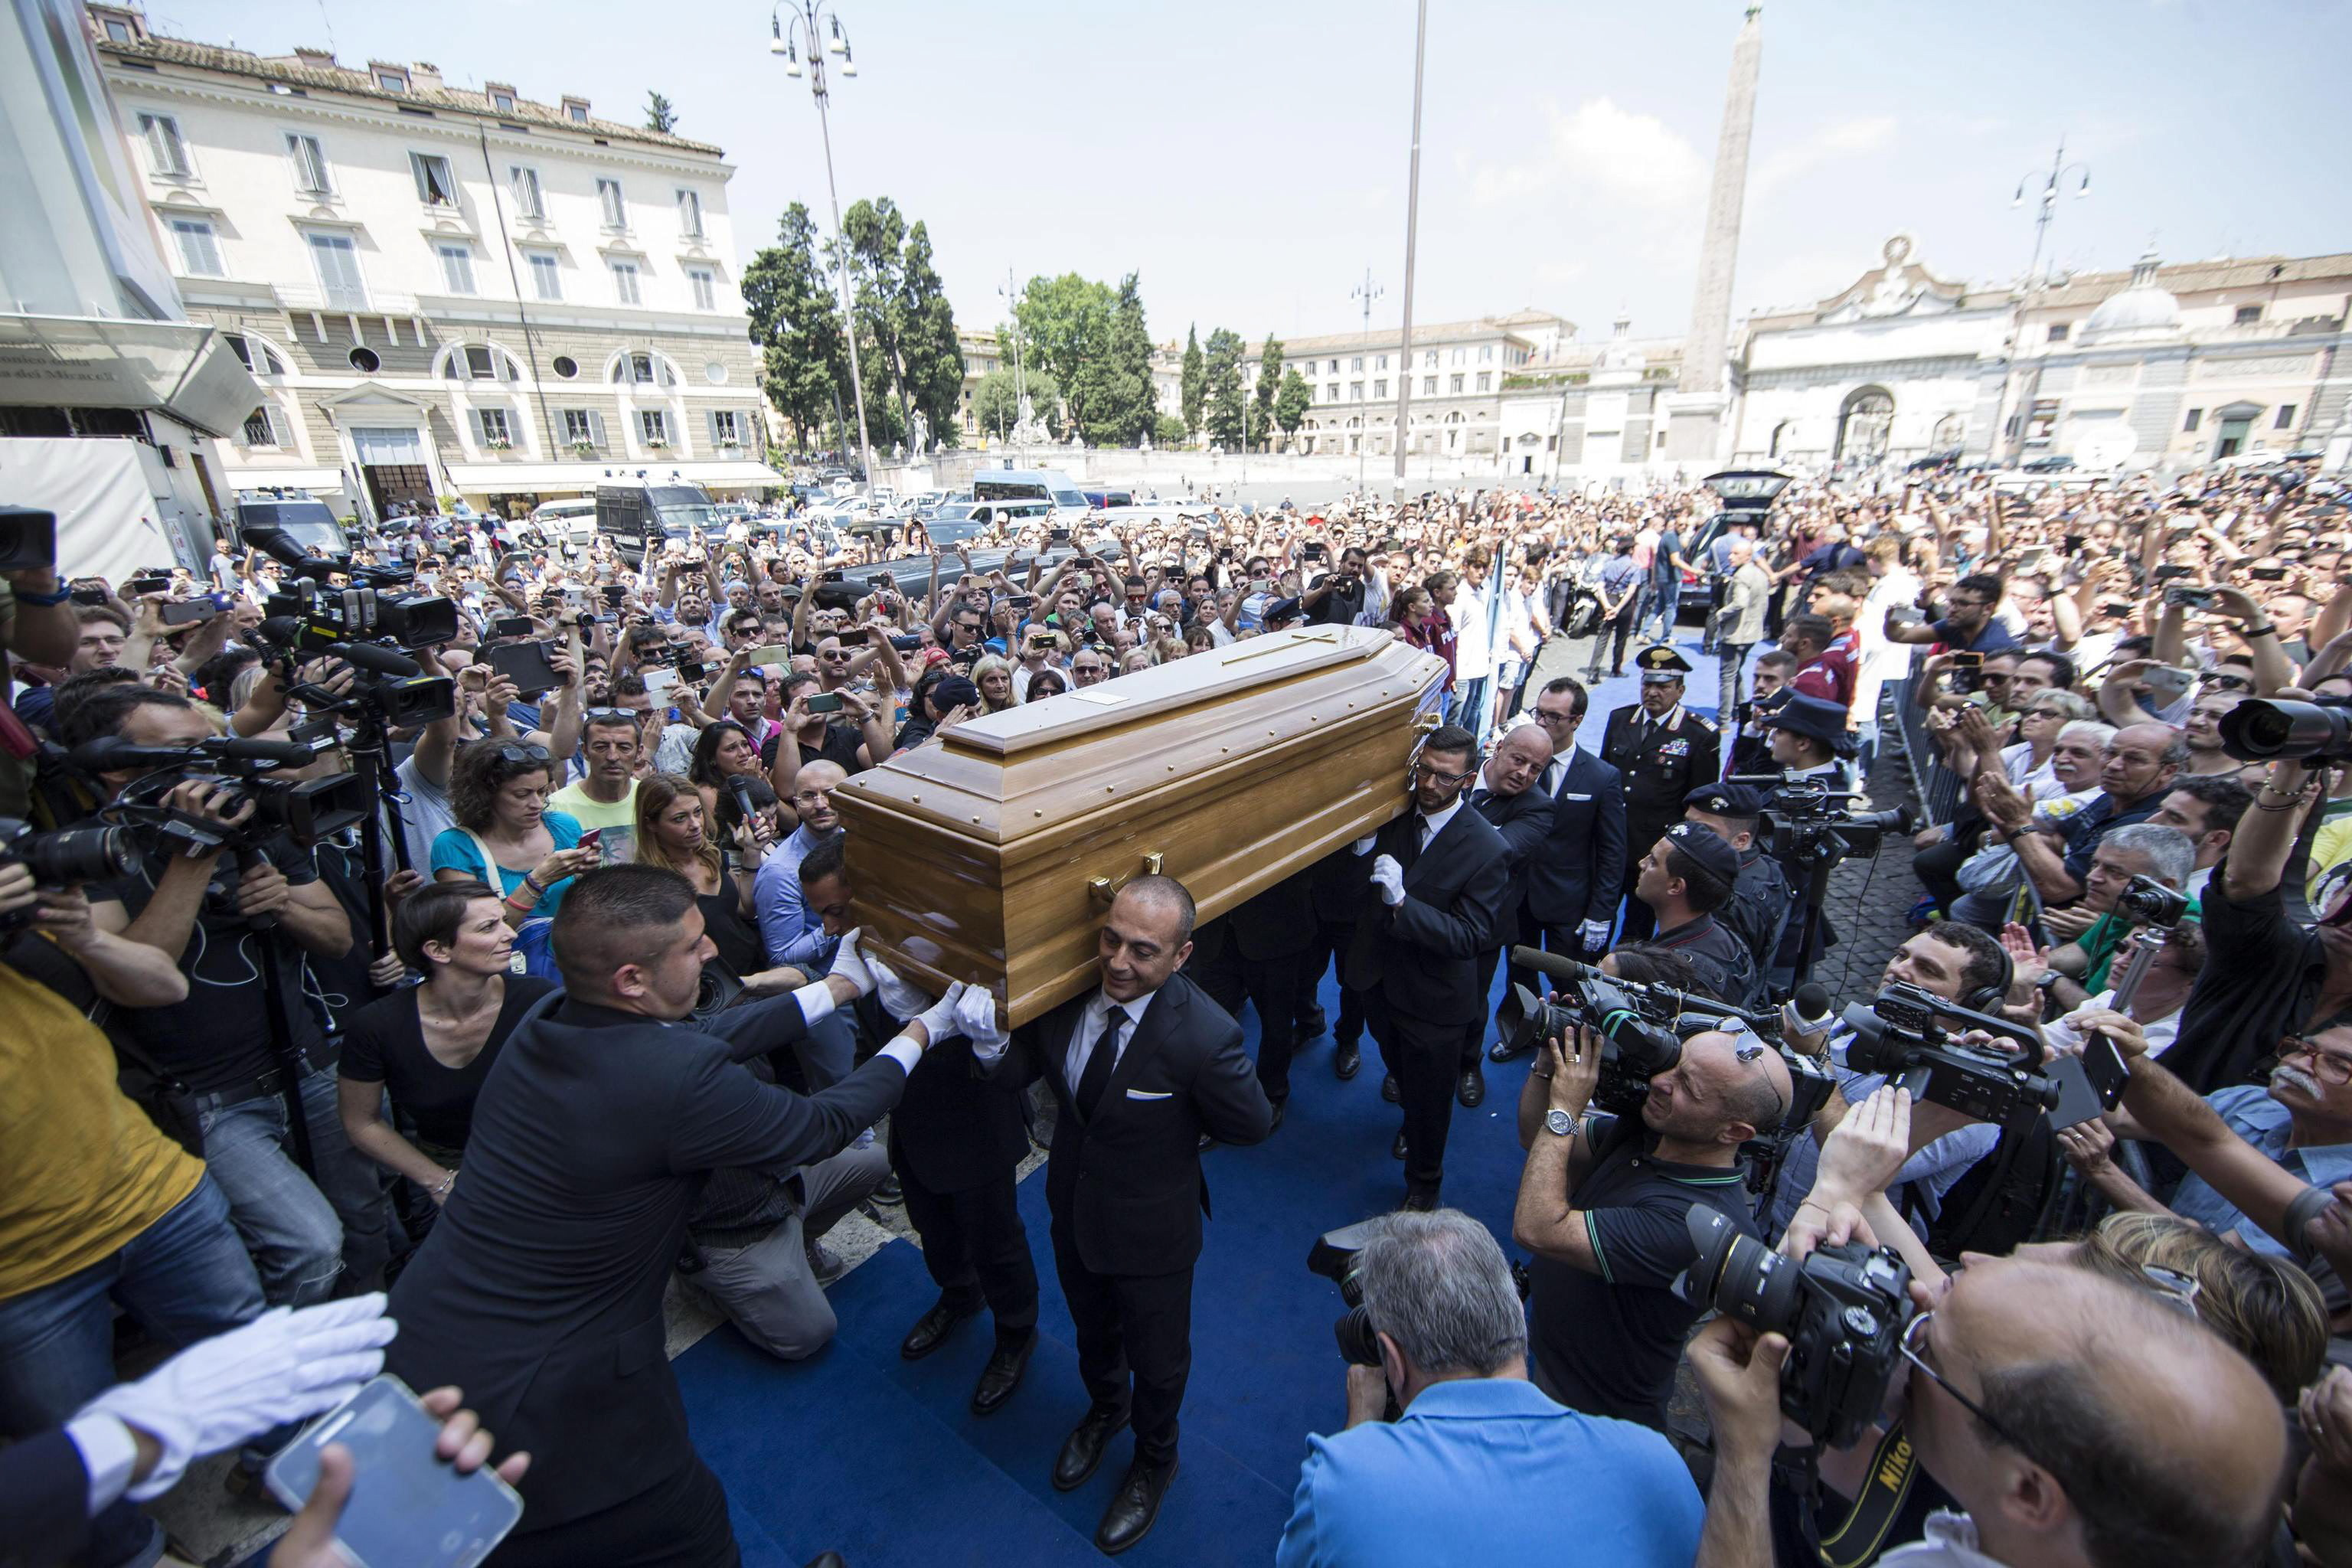 epa05398878 Guests pay their respects to Italian actor Carlo Pedersoli coffin, also known as Bud Spencer, out of the Chiesa d